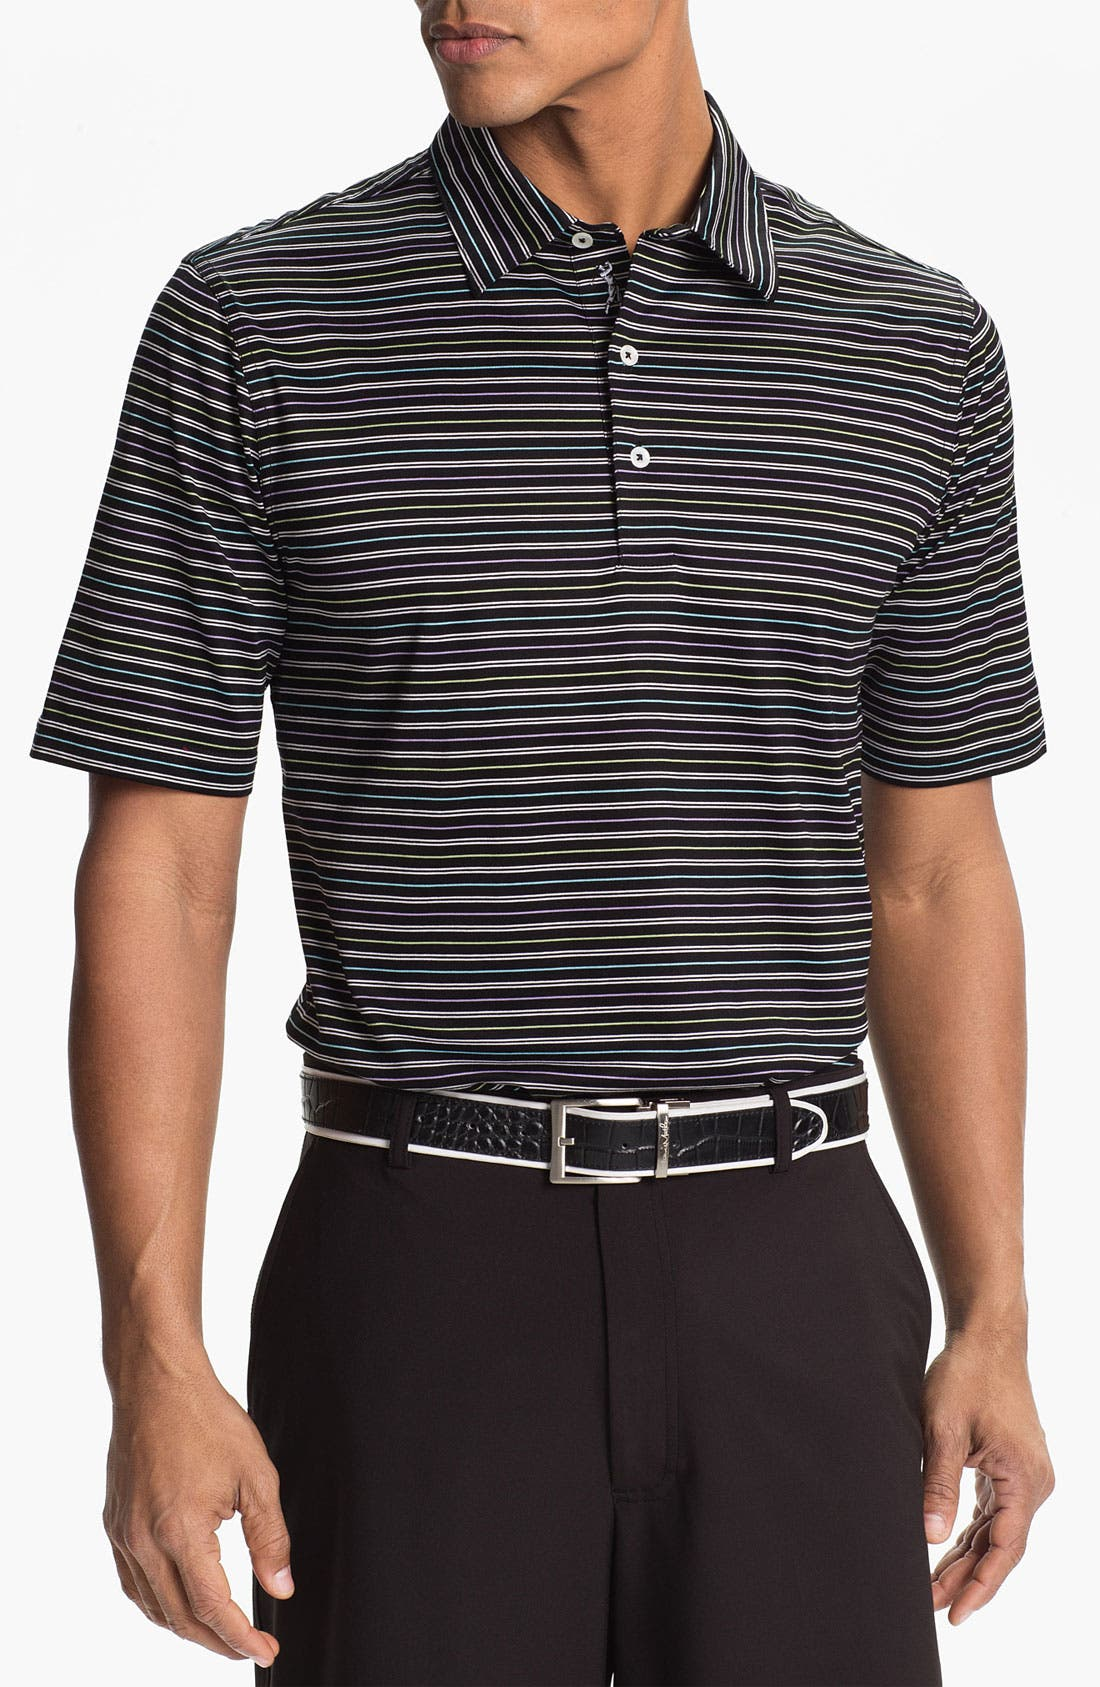 Main Image - Bobby Jones 'Tour' Stripe Polo